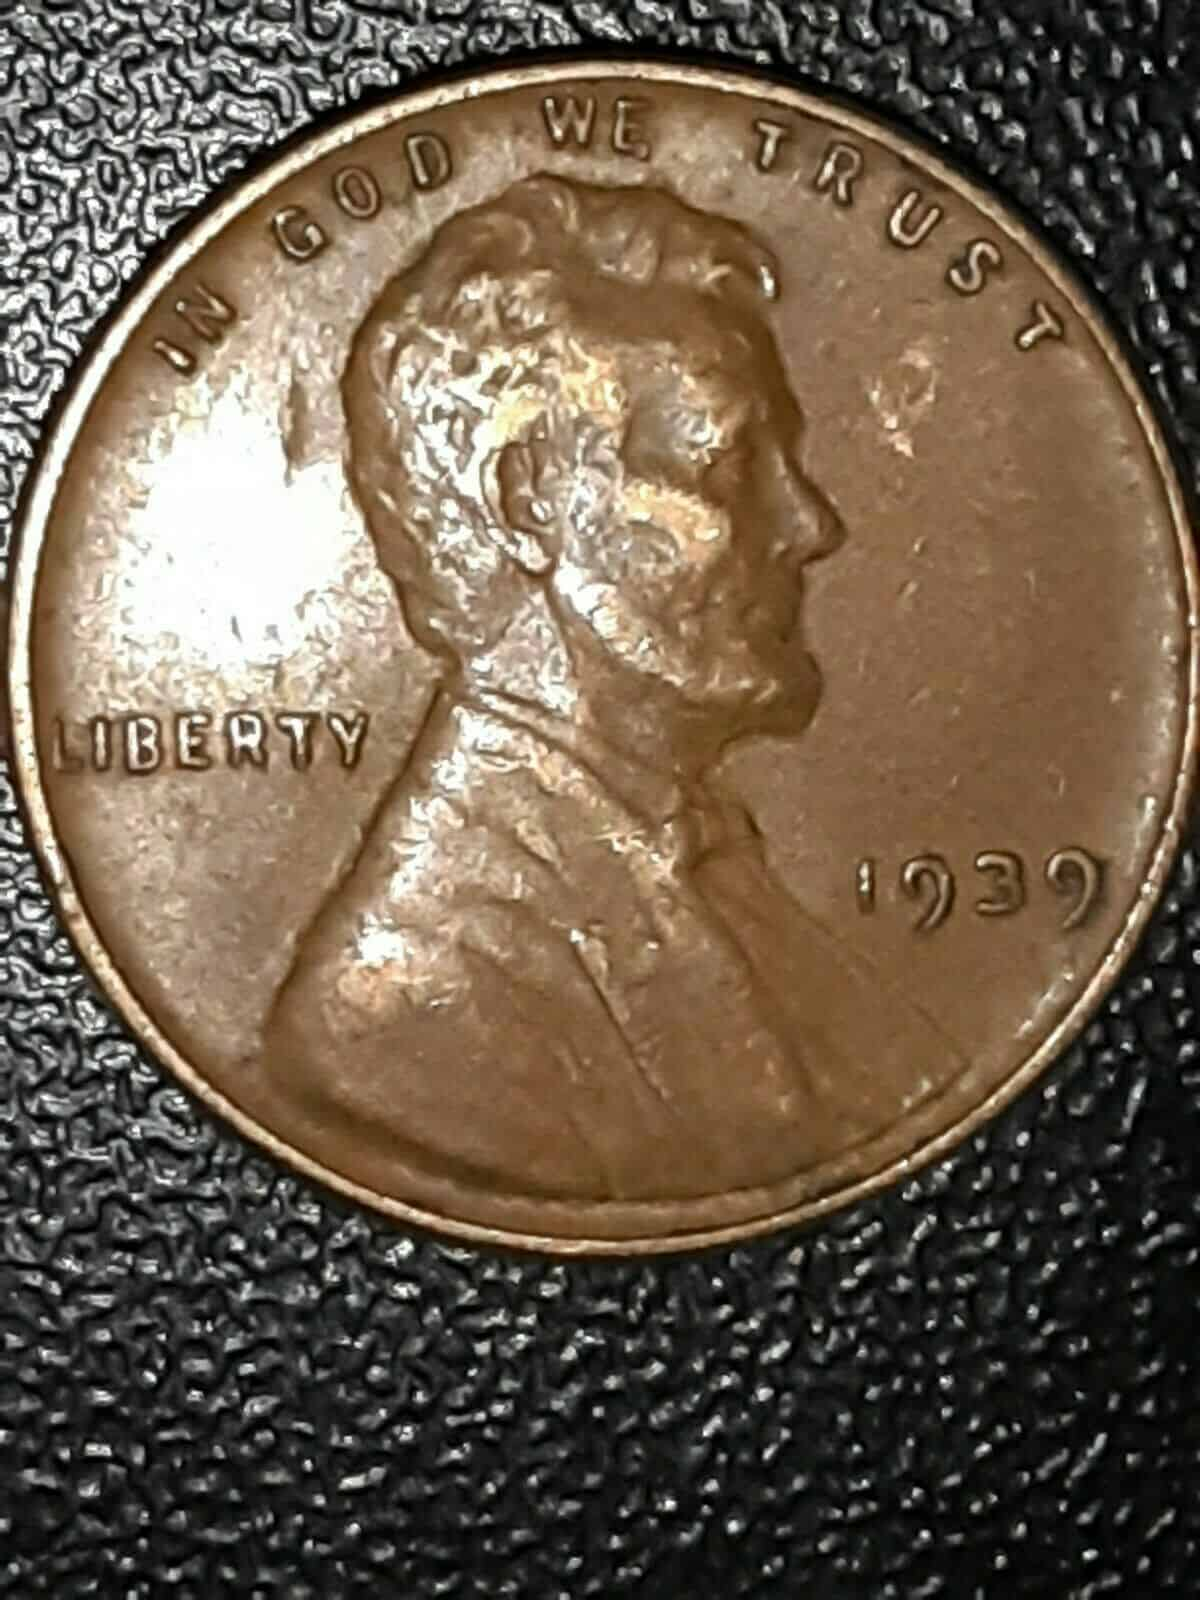 Which US Mint Made the 1939 Penny